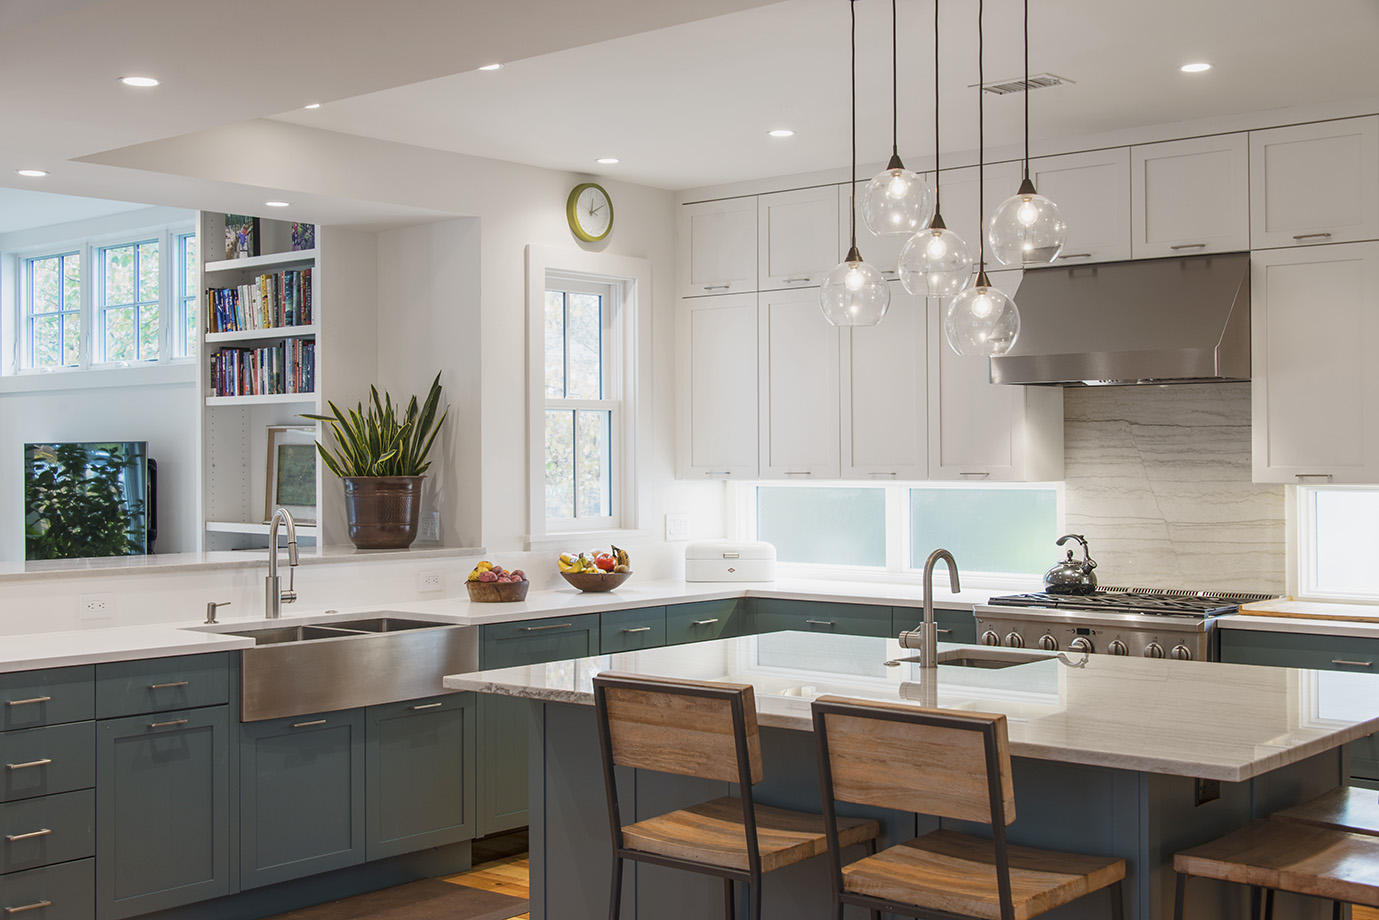 Saltbox Architecture's kitchen renovation